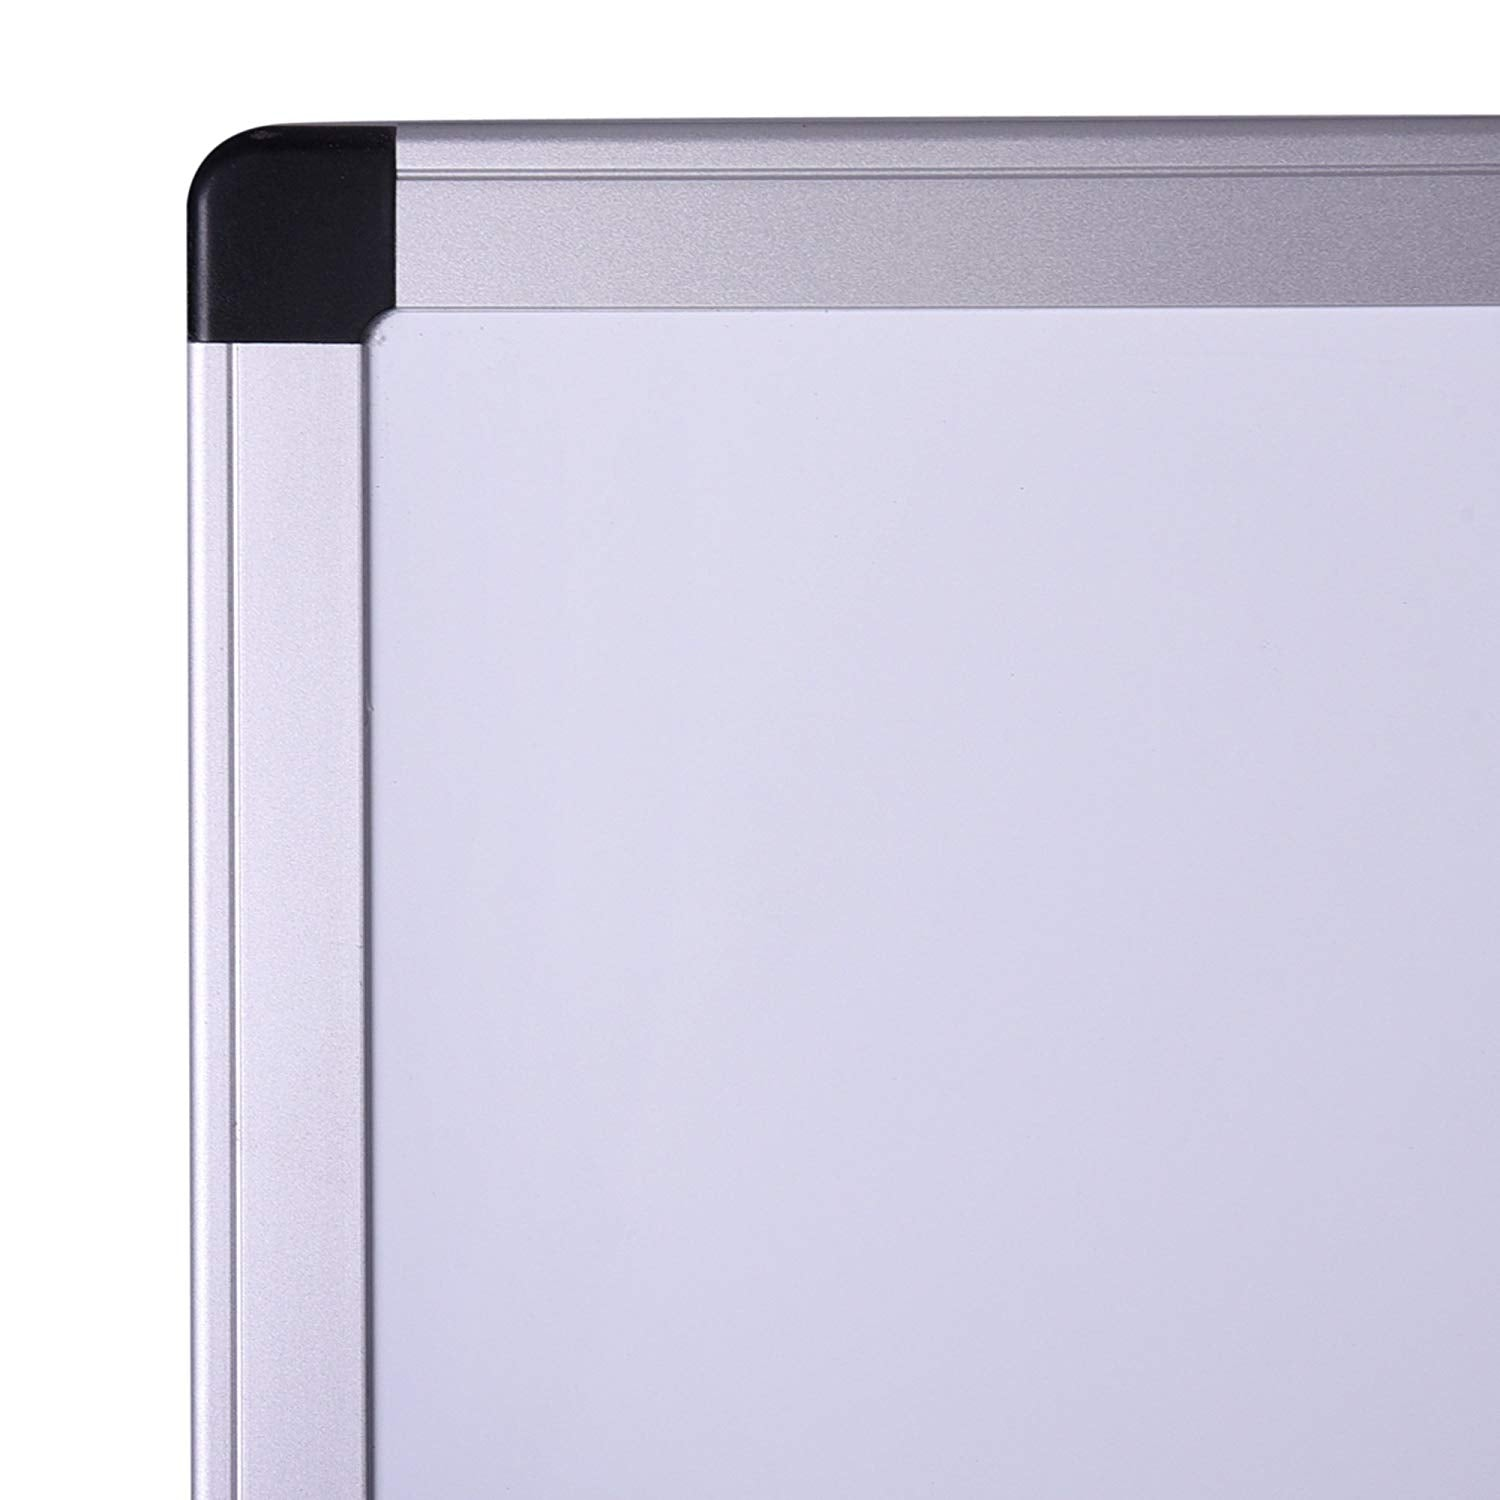 48 X 36 Inch Double Sided Magnetic Mobile Dry Erase Board Easel Rolling Office Whiteboard Presentation Writing Board On Aluminum Stand And Wheels For